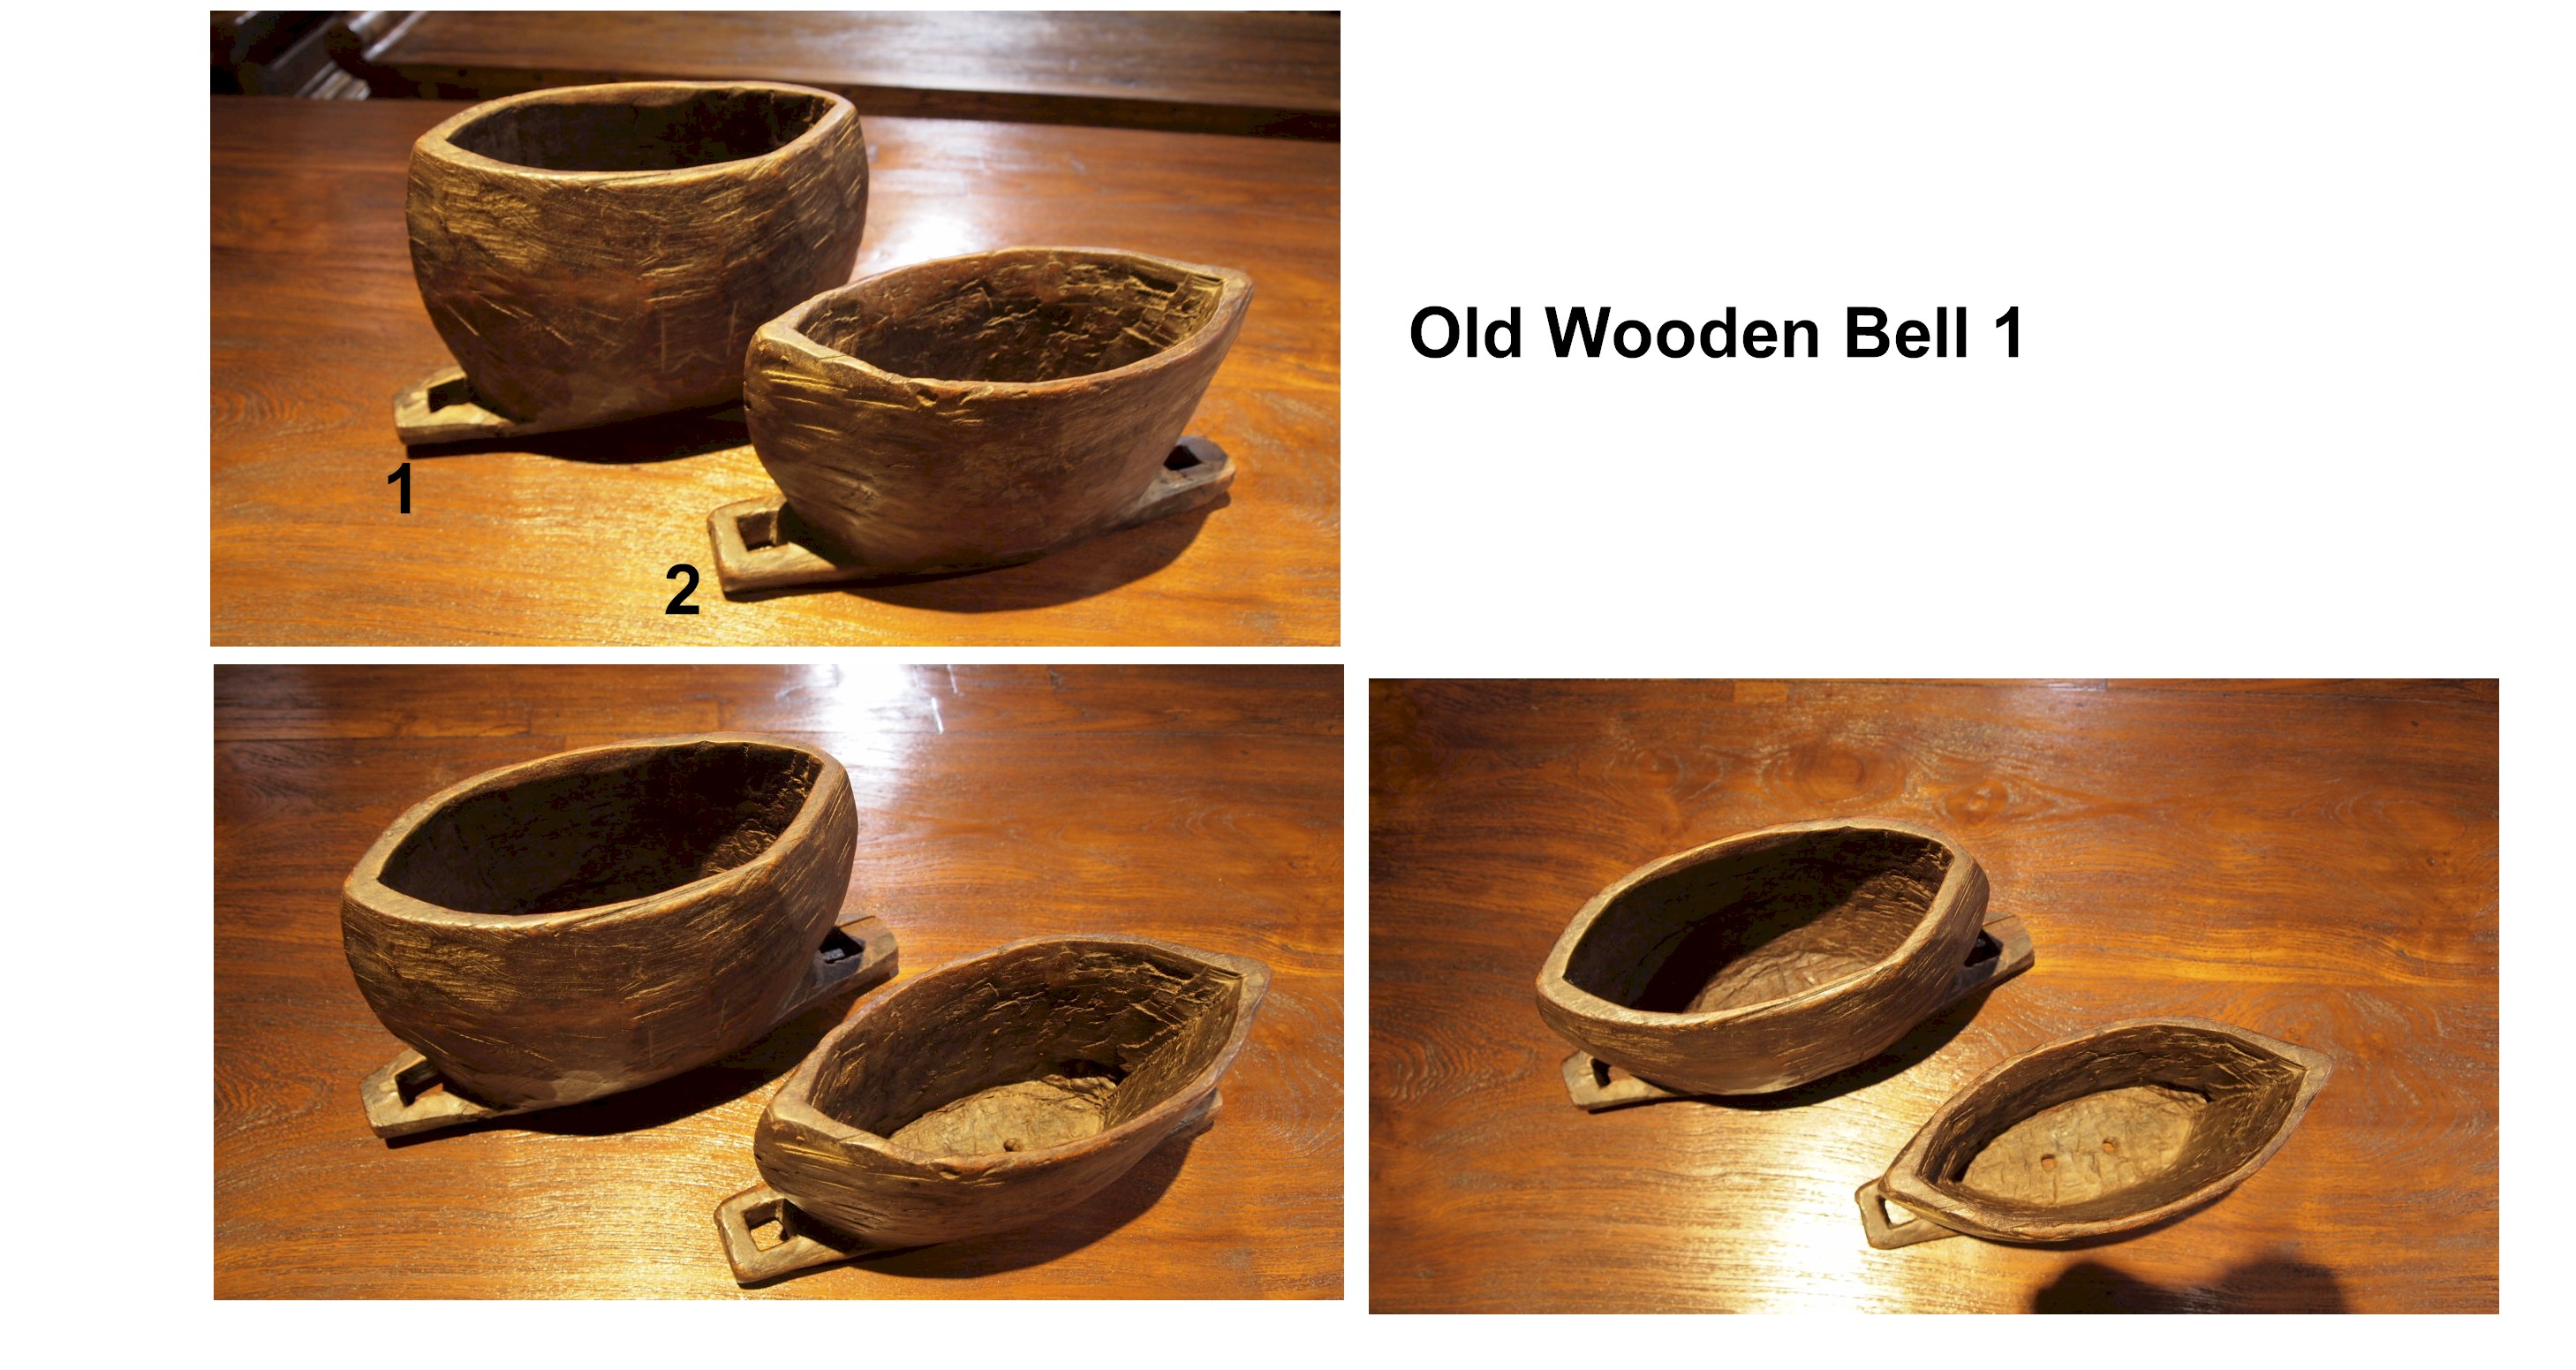 Old Wooden Bell 1